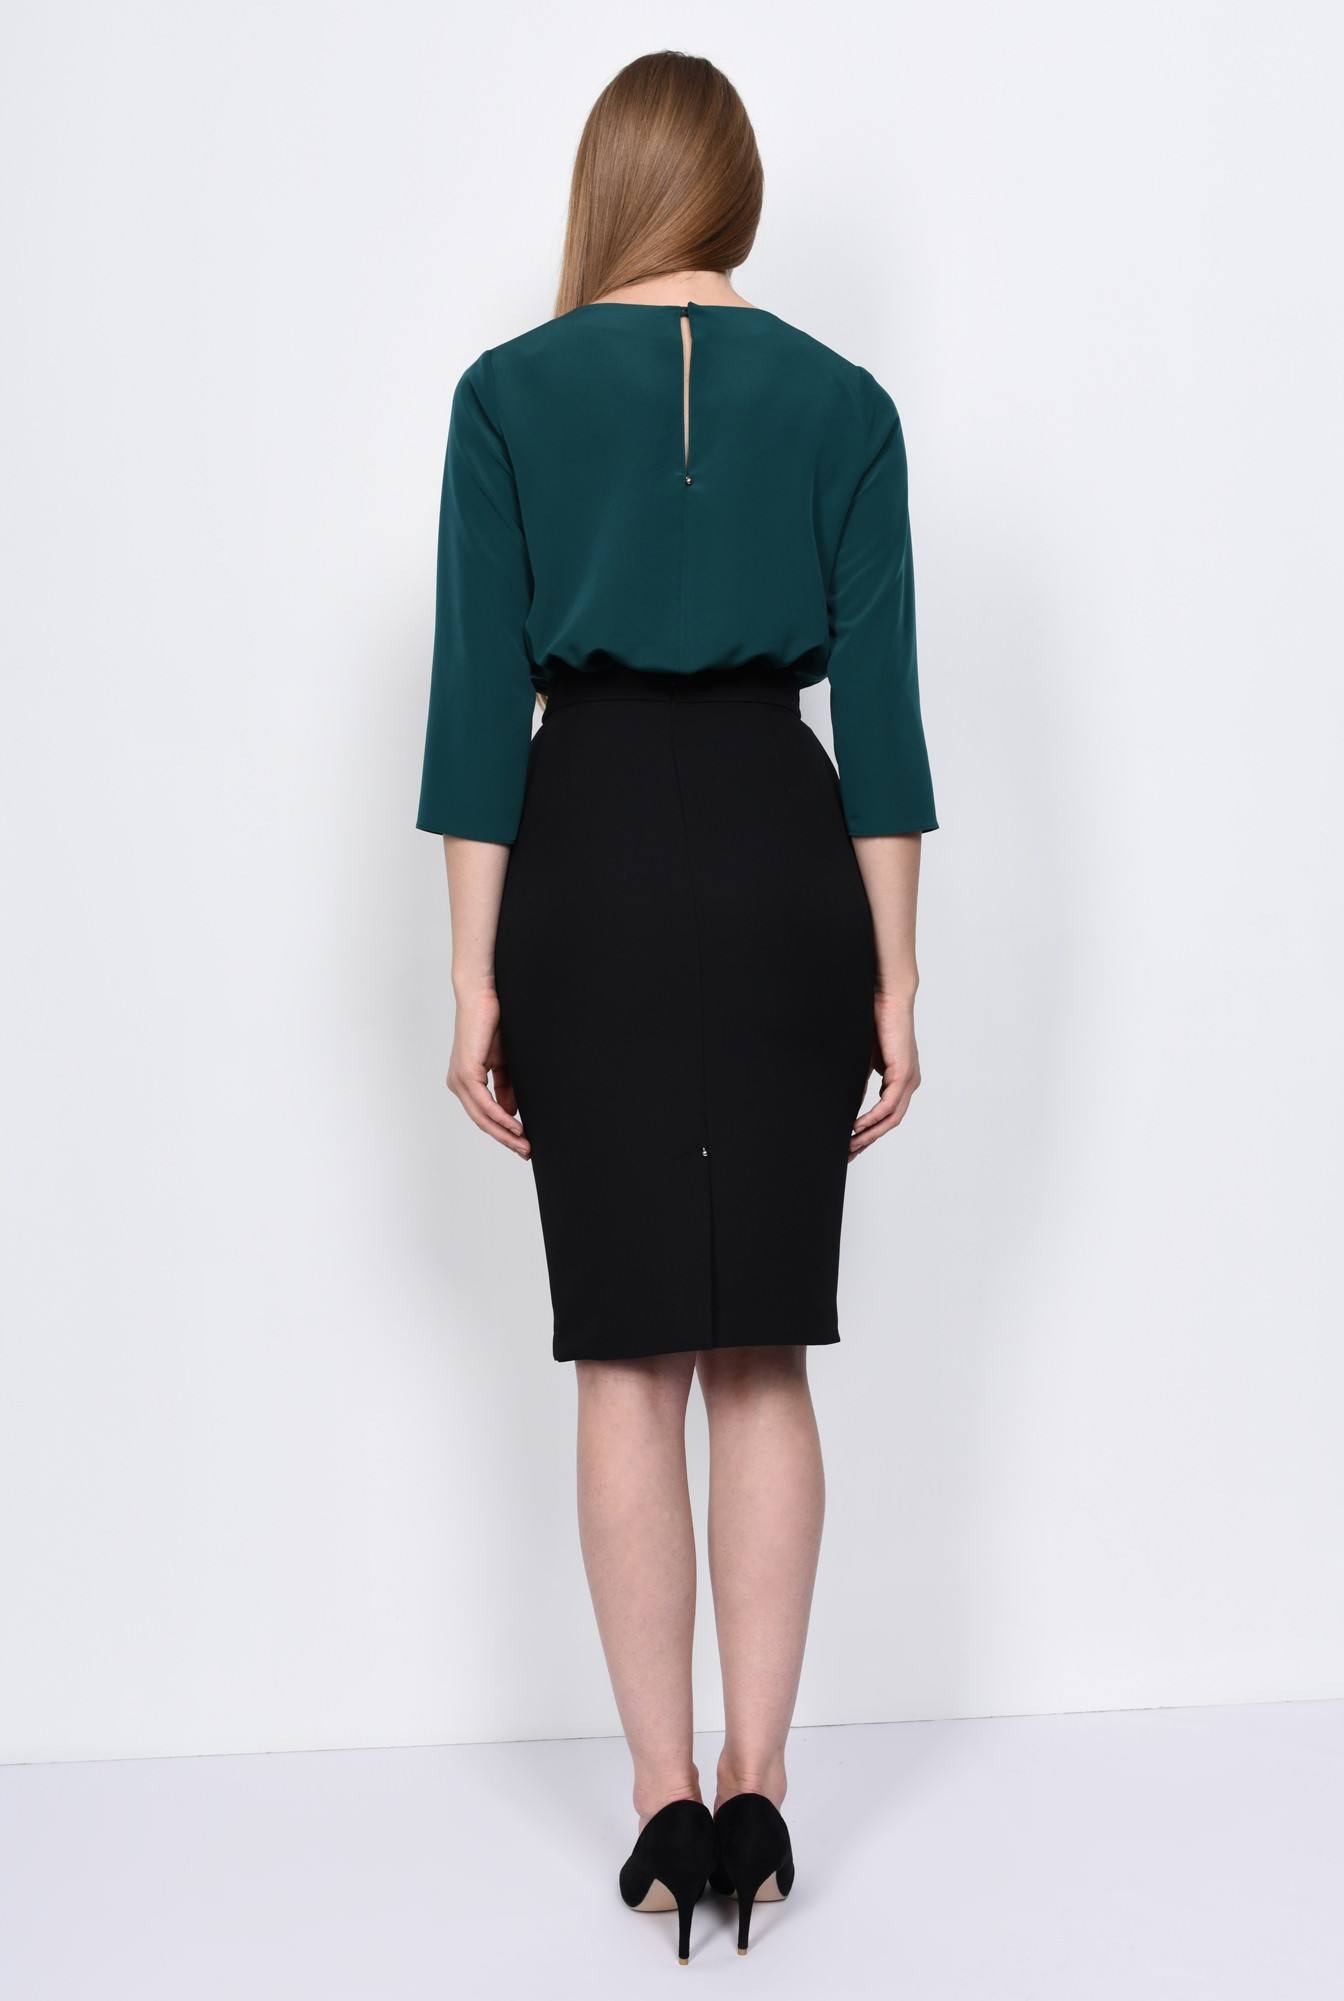 1 - BLUZA OFFICE BL 151-VERDE